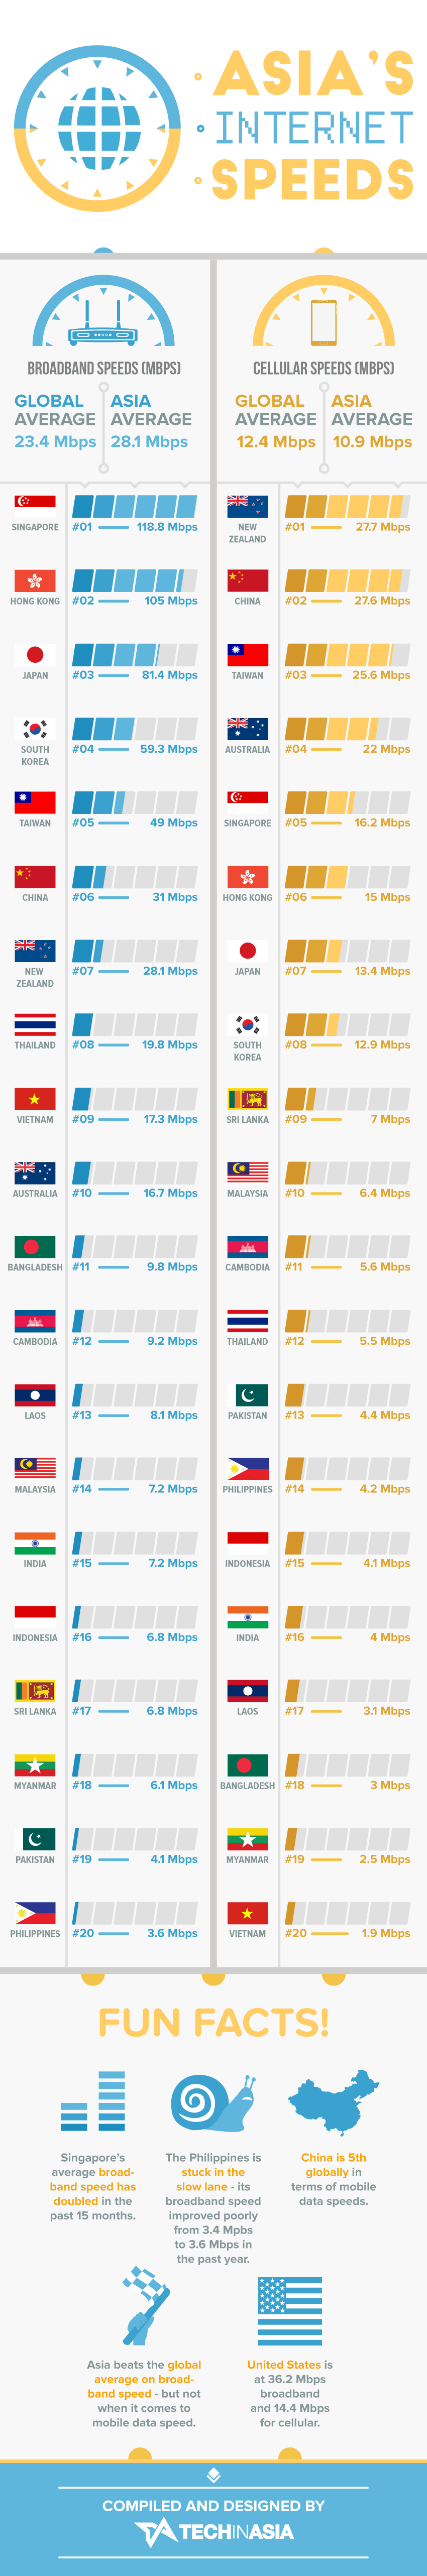 Asia-Internet-Speeds-for-broadband-and-mobile-data-June-2015-infographic